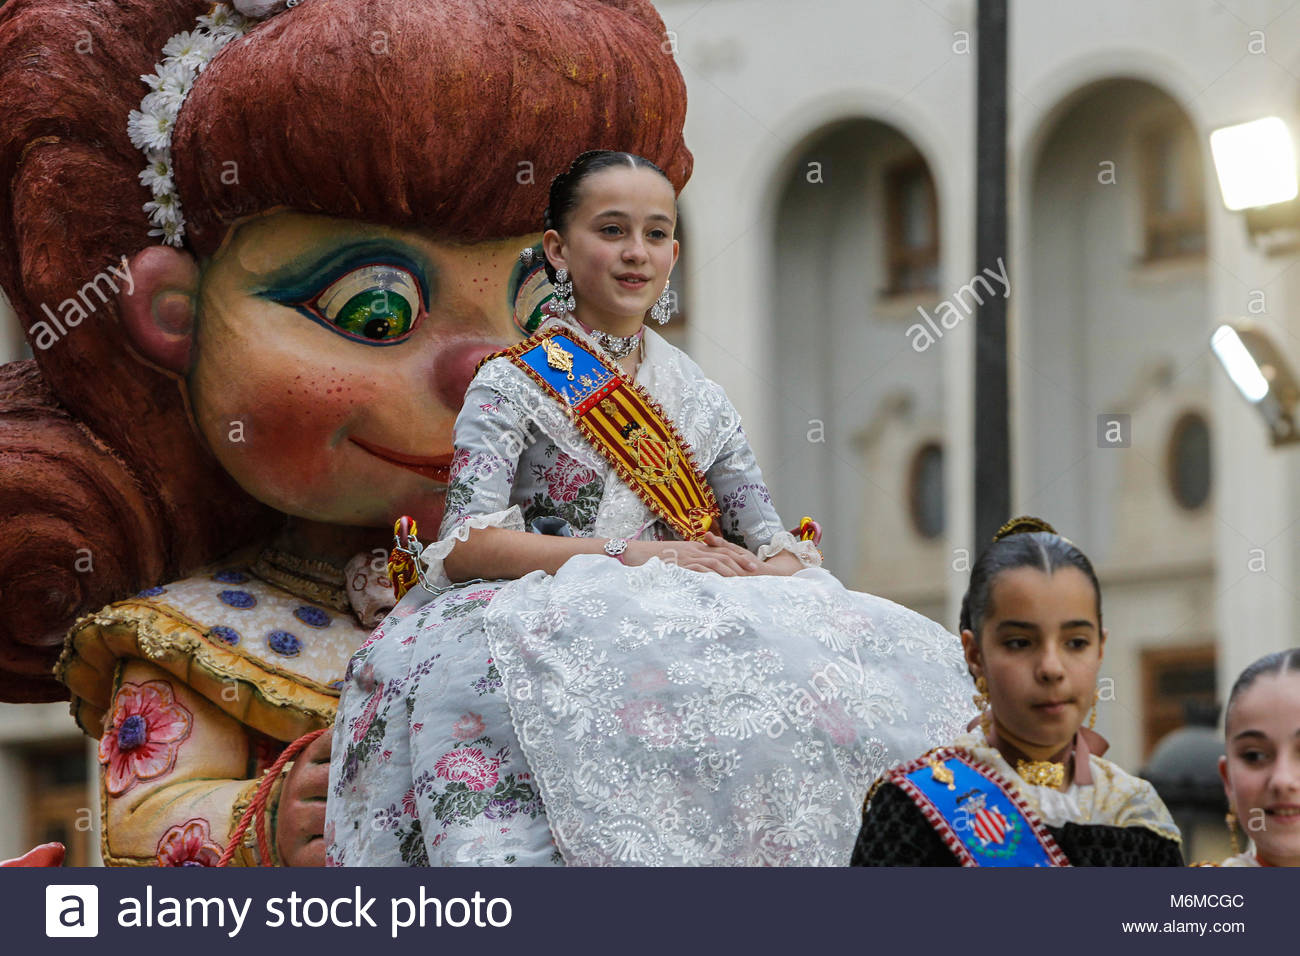 Fallera mayor infantile of valencia - Stock Image